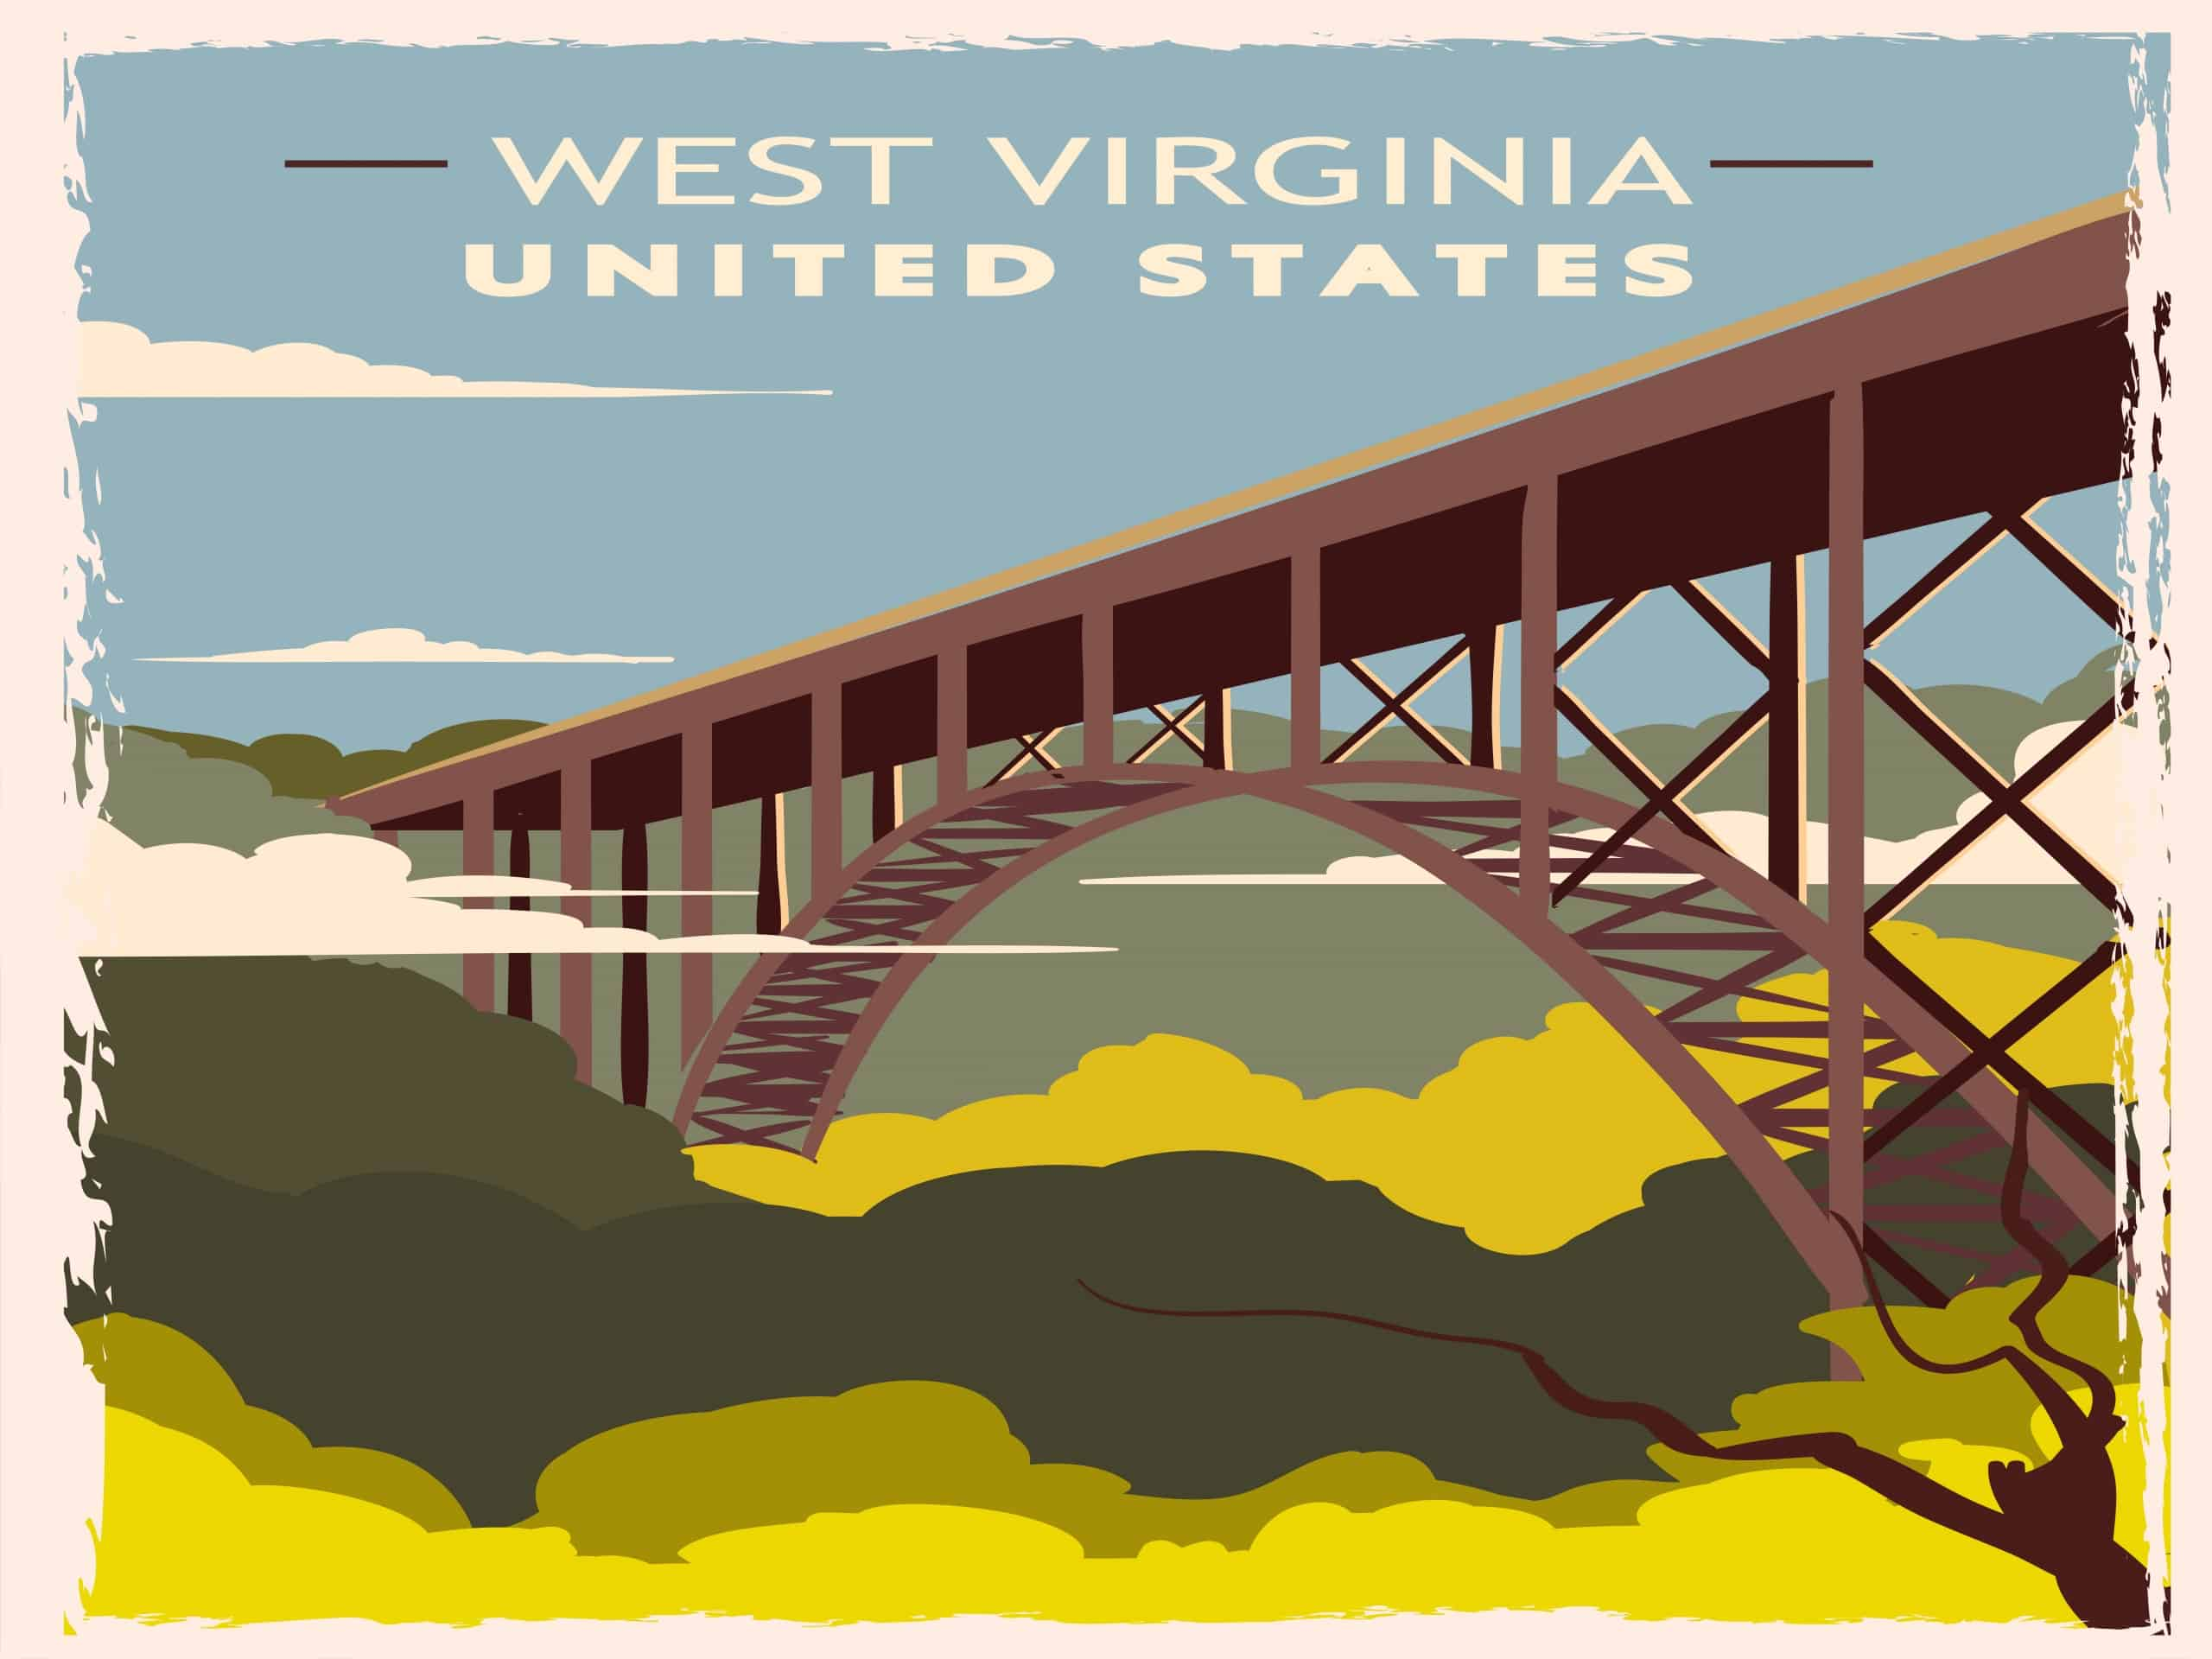 West Virginia's New National Park image